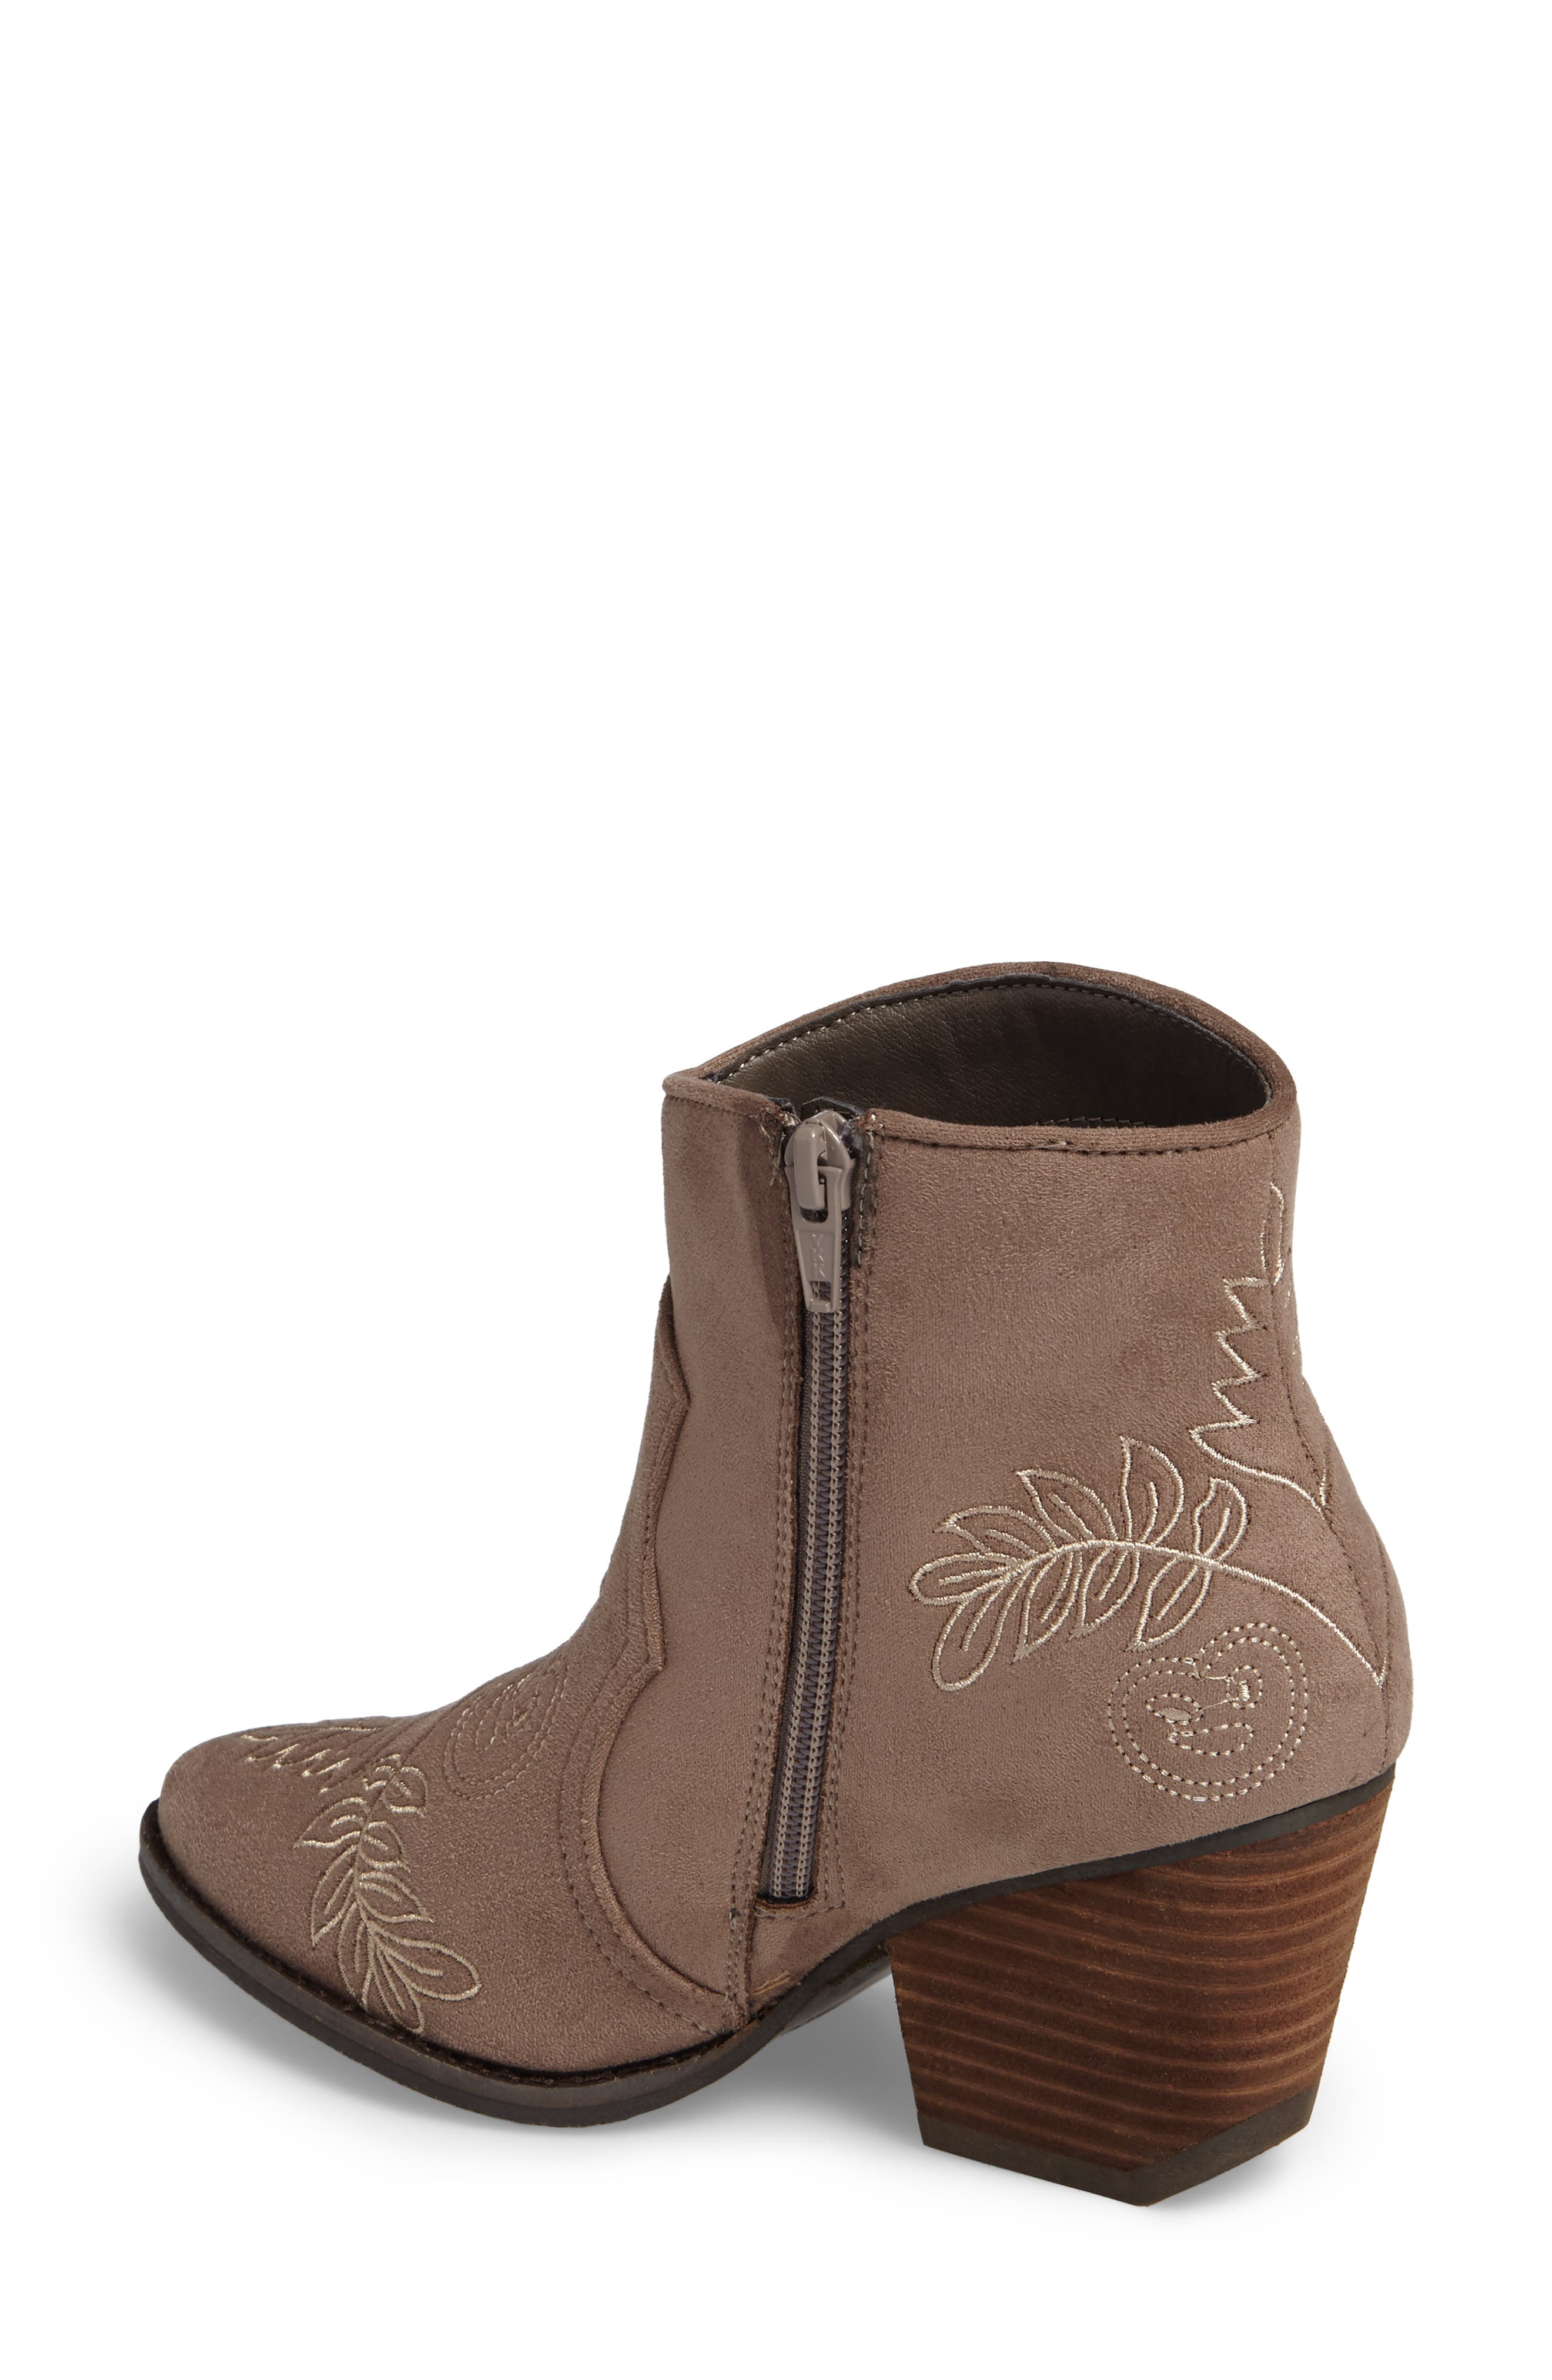 Axis Embroidered Bootie,                             Alternate thumbnail 2, color,                             Taupe Suede